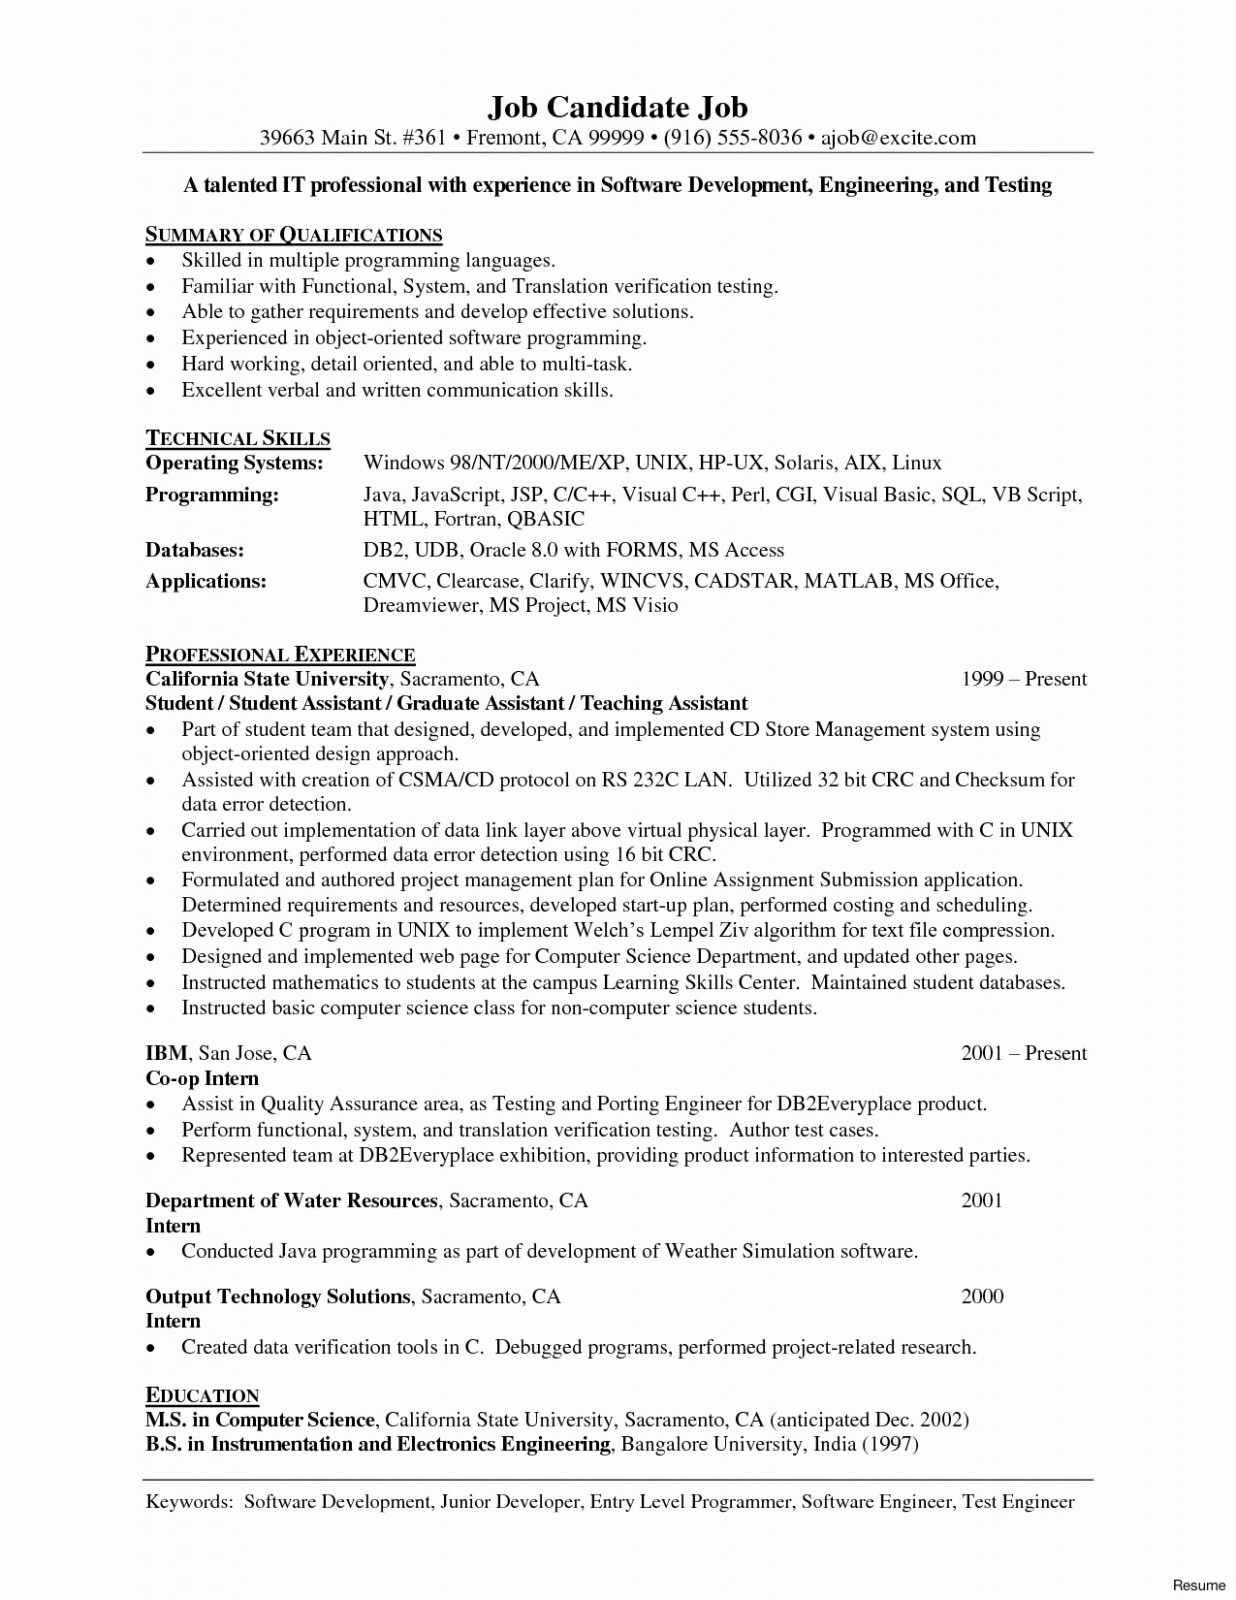 computer engineering resume example-puter Engineering Resume Awesome Programmer Resume Template Lovely Ssis Resume 0d Aurelianmg puter Engineering Resume 9-f